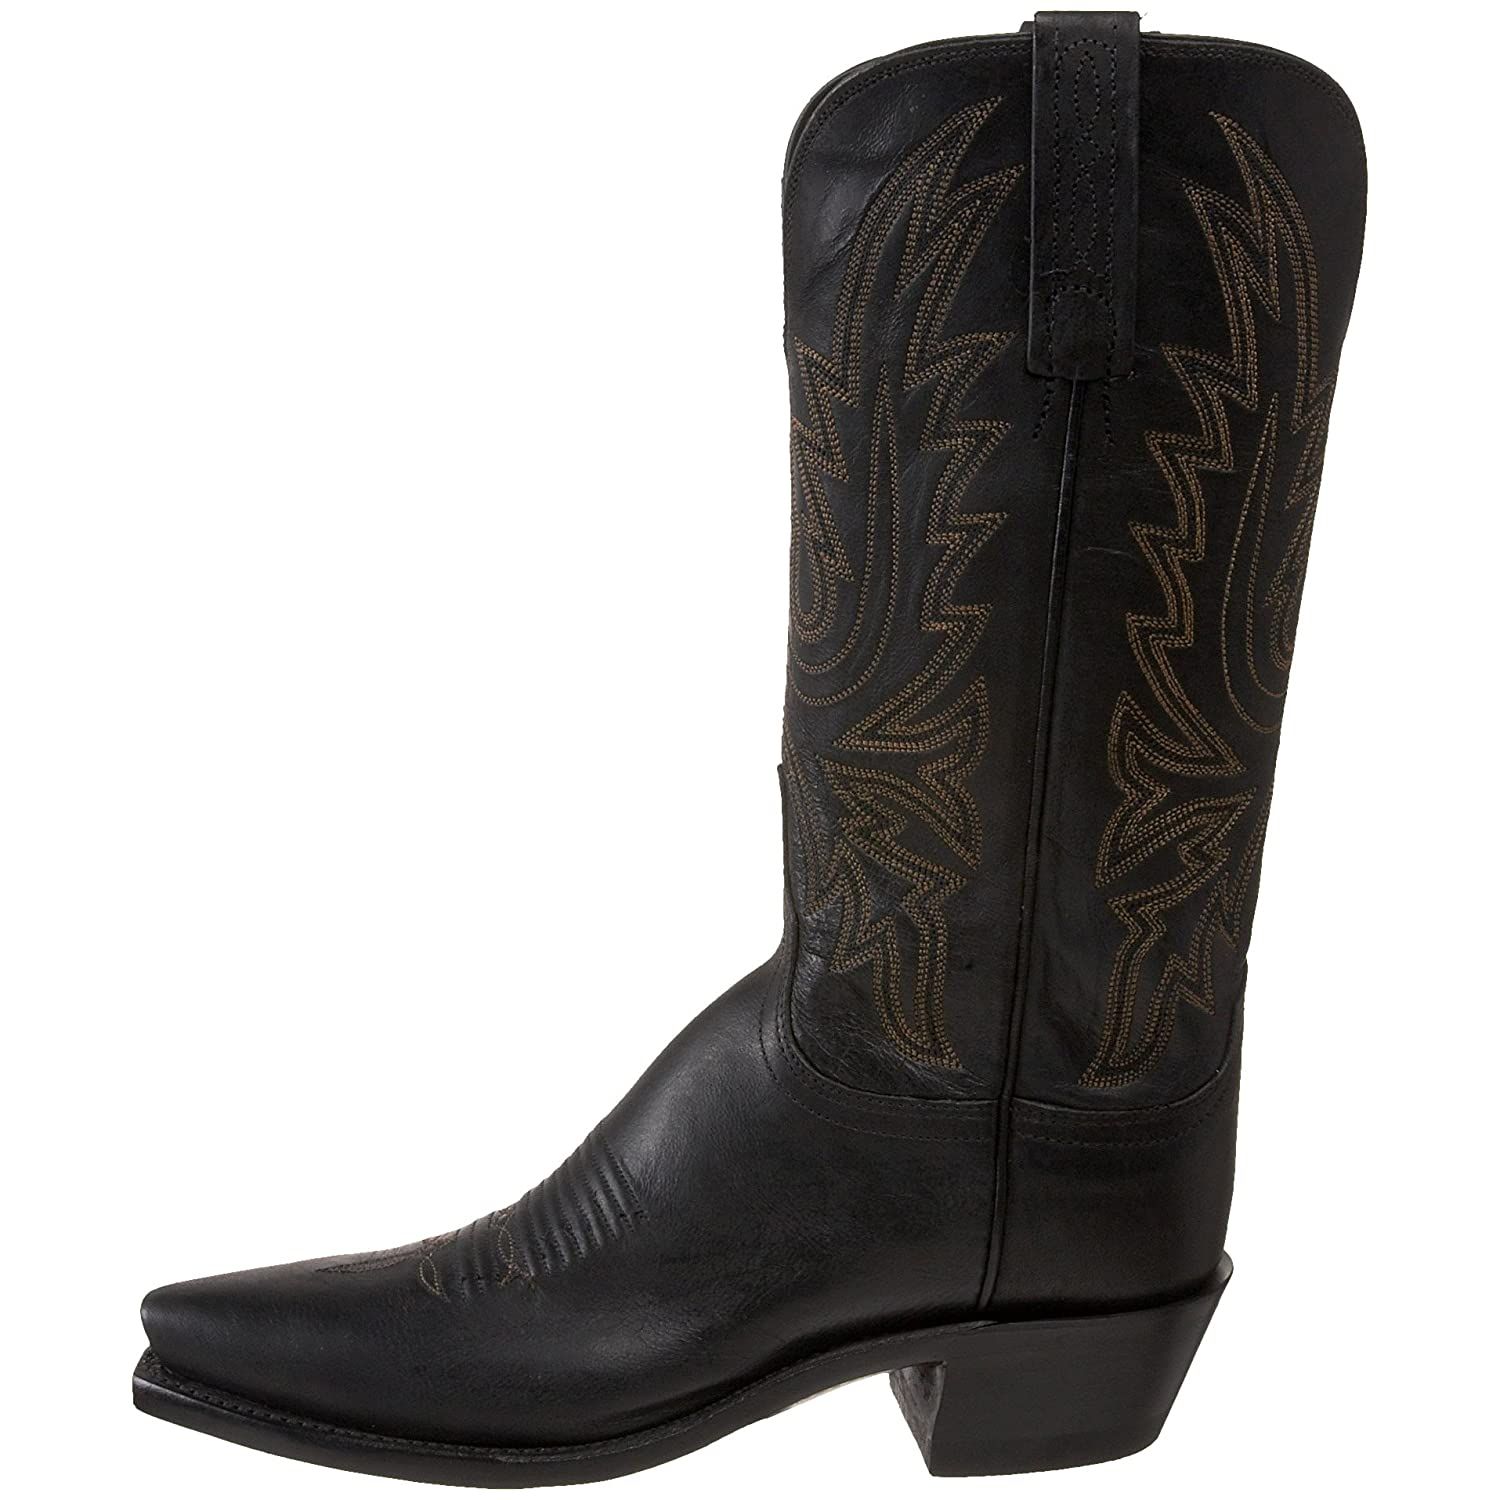 8393355f7c2 1883 by Lucchese Womens N4559.54 Boot